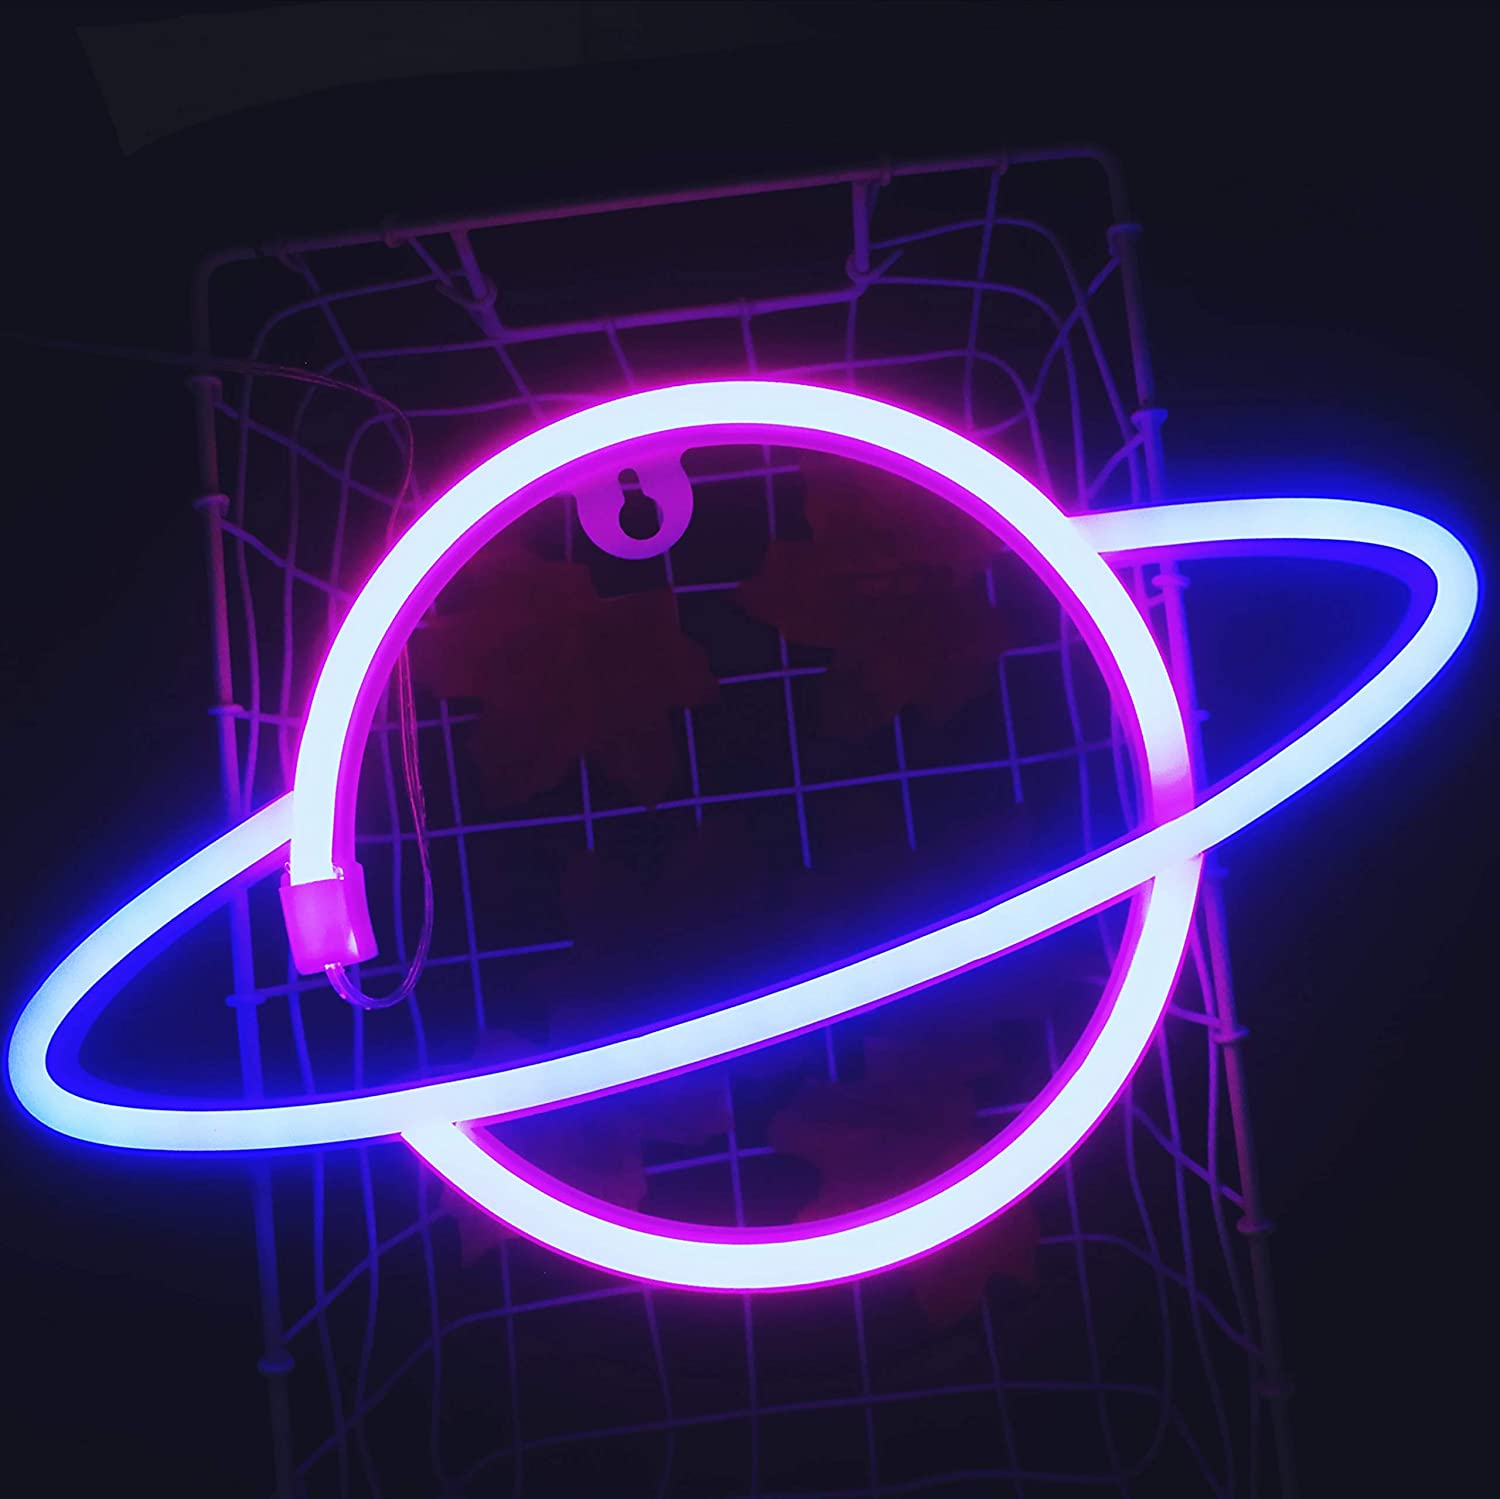 JYWJ Planet Neon Sign Pink&Blue, 3-AA Battery Powered Neon Light,LED Lights Table Decoration,Girls Bedroom Wall Décor,Kids Birthday Gift,Wedding Party Supplies Business Gifts Neon Signs